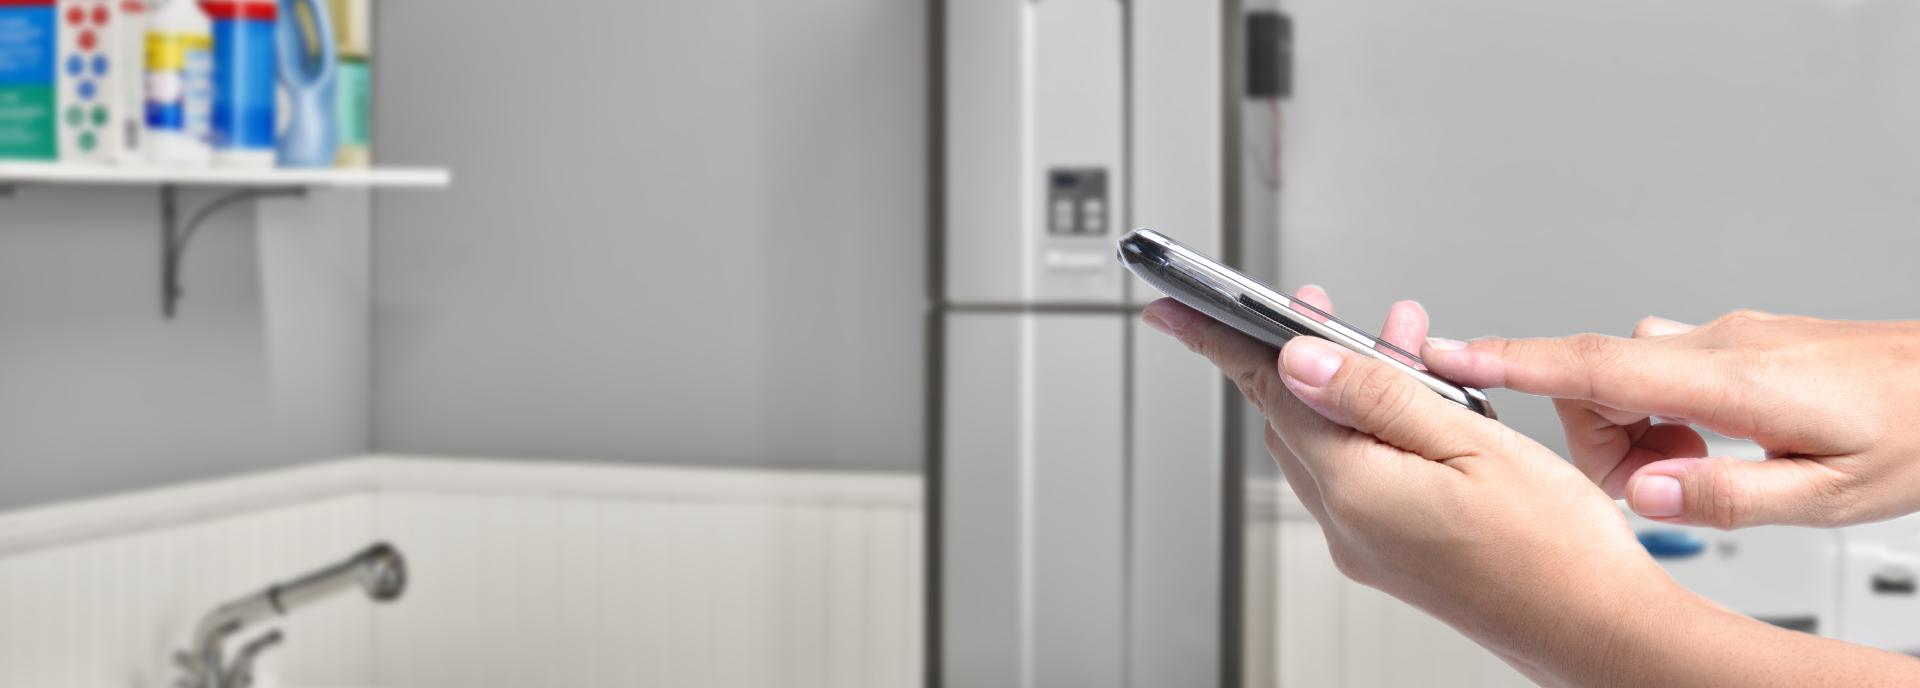 Control your Tankless Water Heater from anywhere with the Control-R app